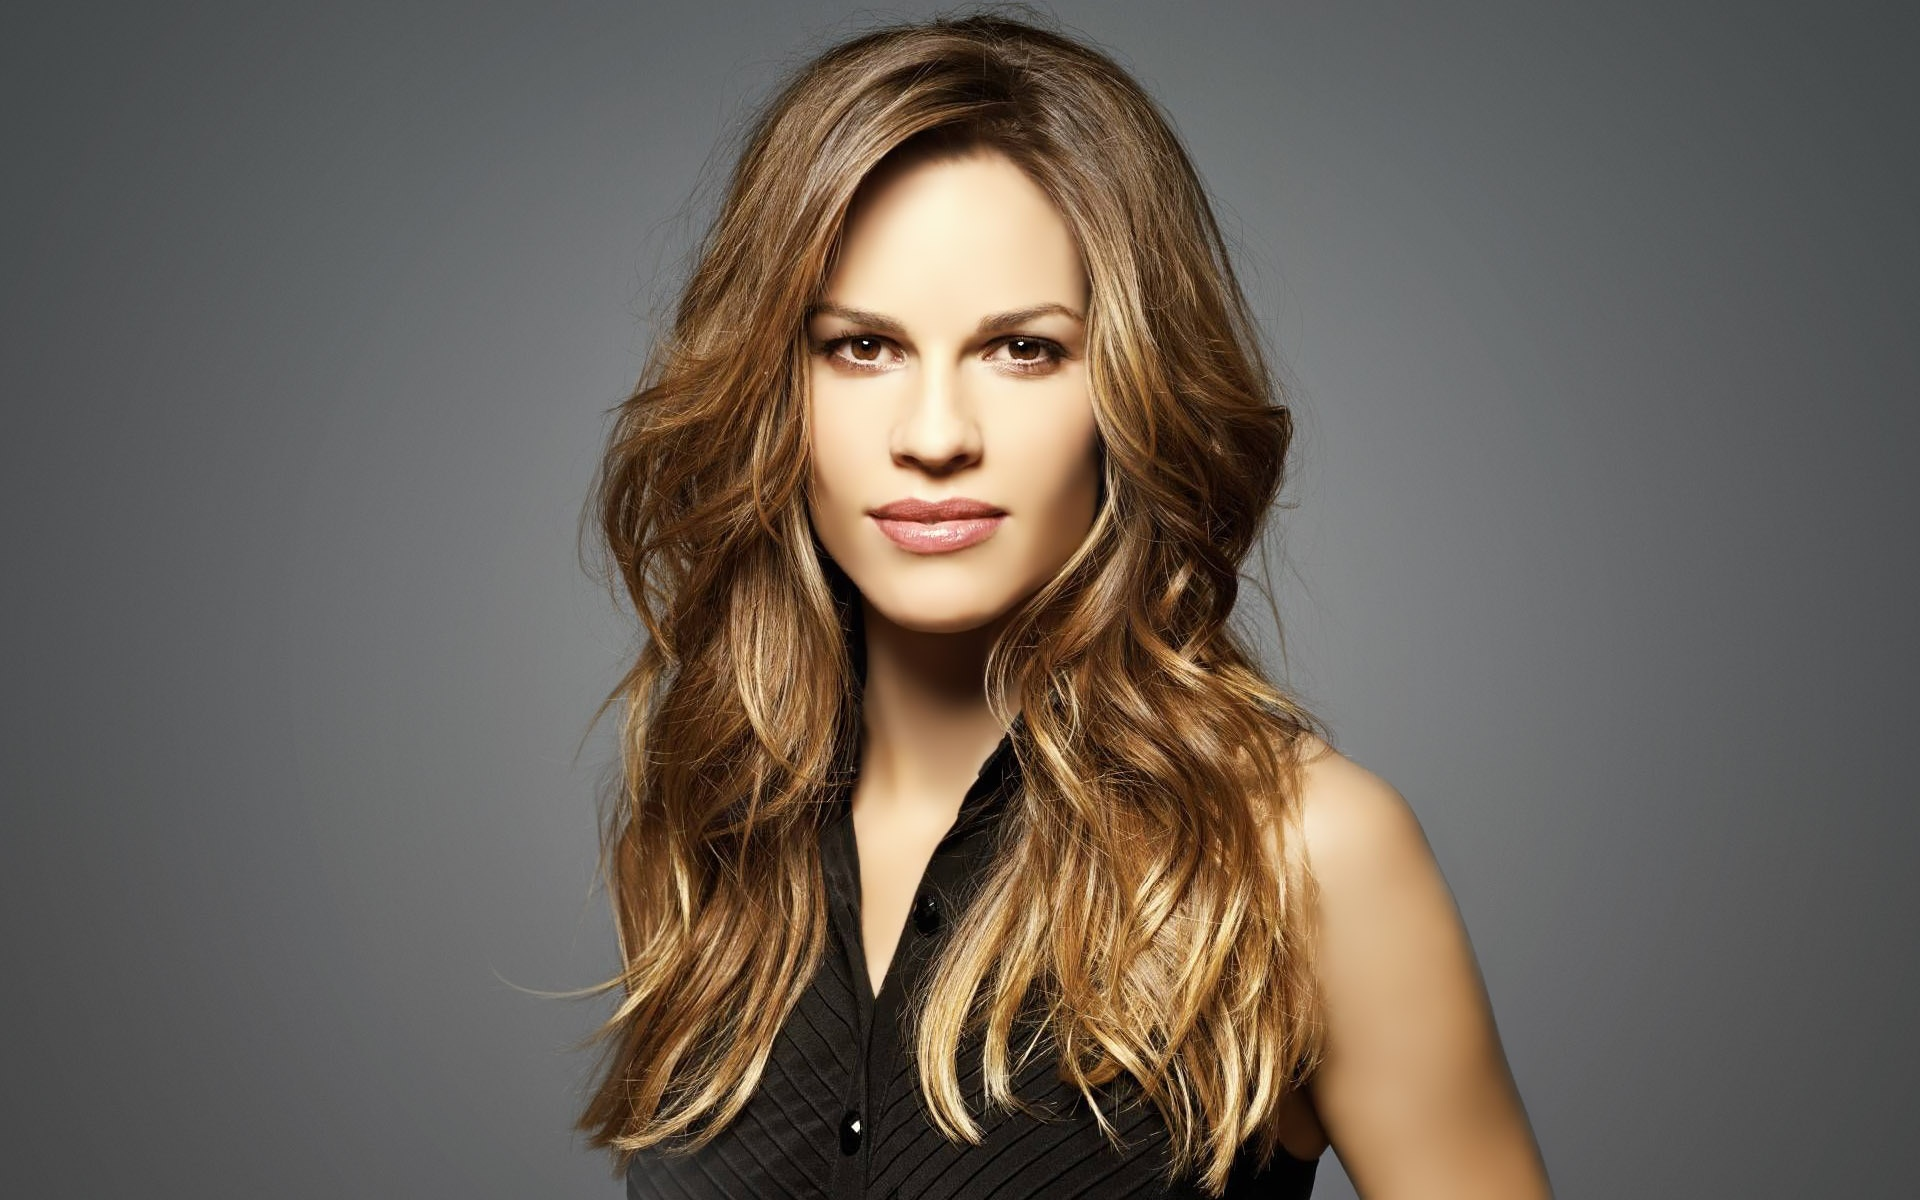 Hilary Swank Backgrounds, Compatible - PC, Mobile, Gadgets| 1920x1200 px